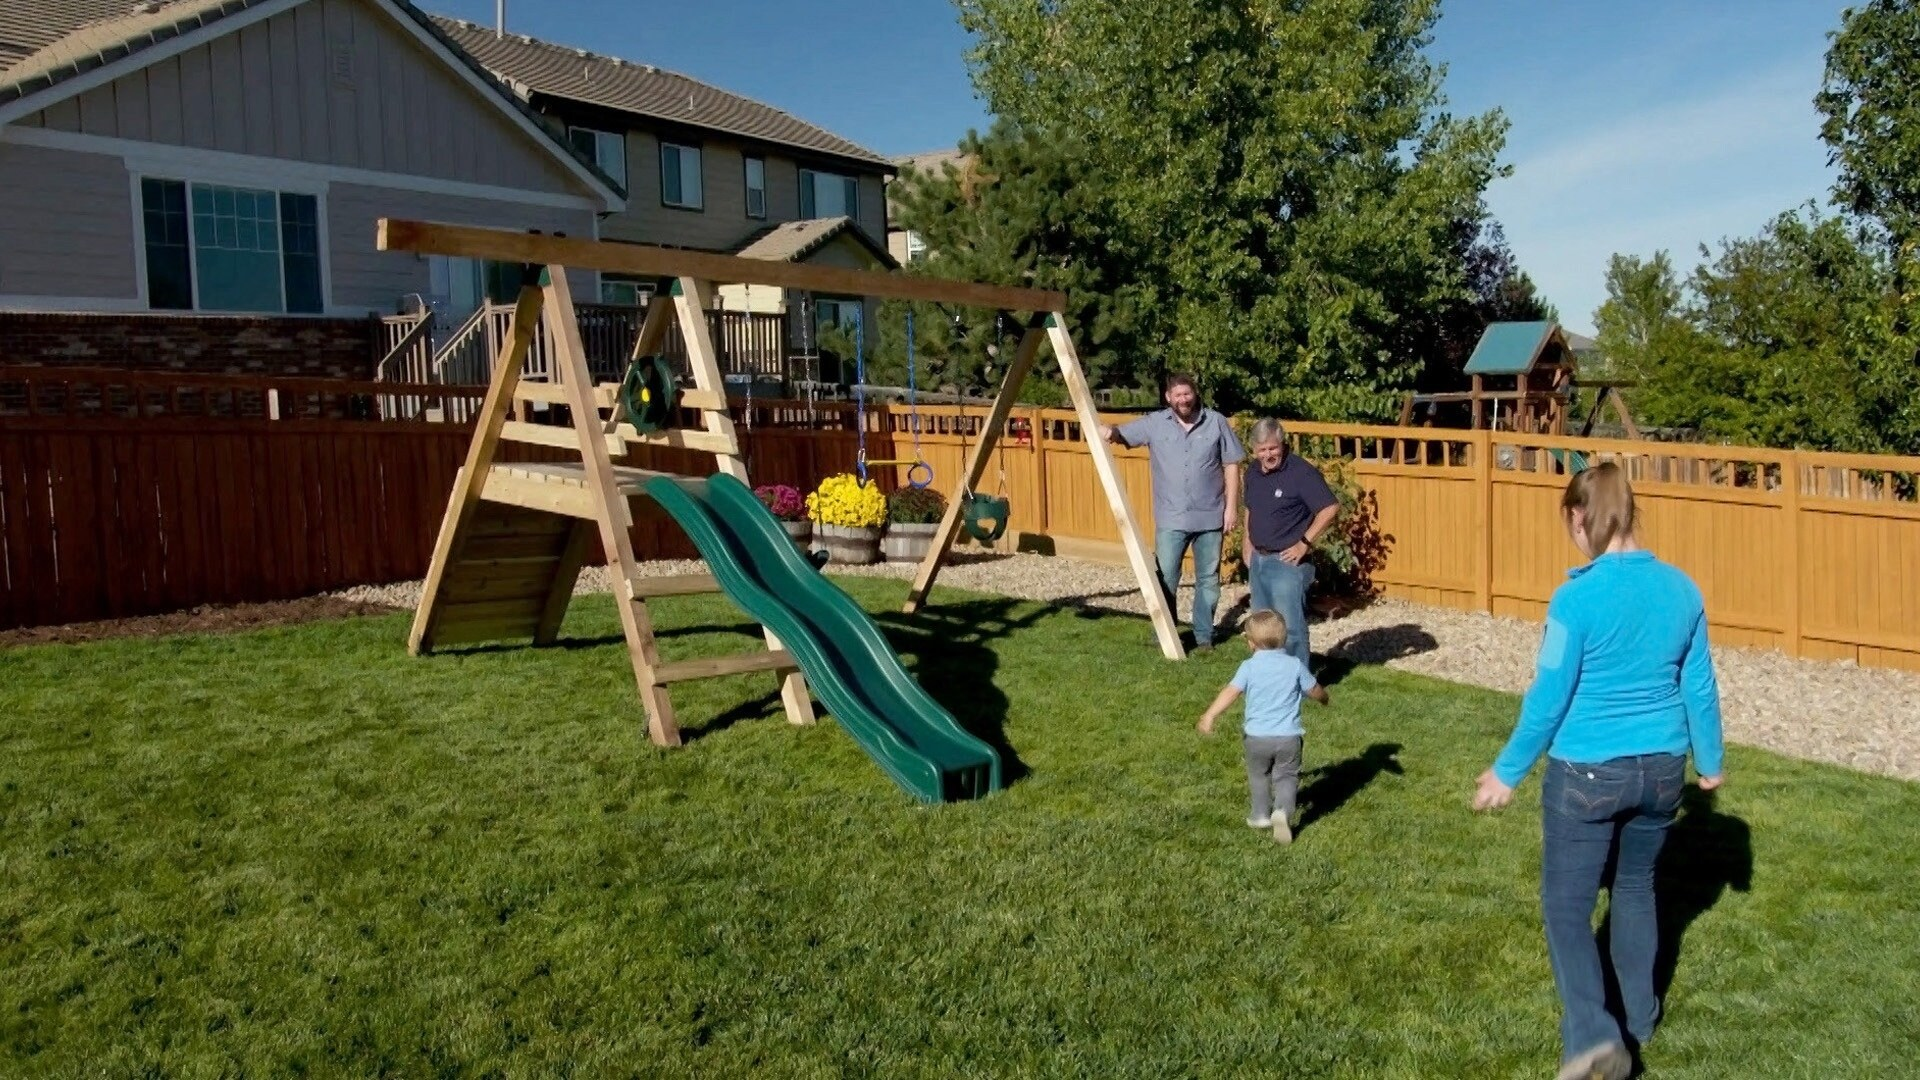 Swing Set; Robotic Construction